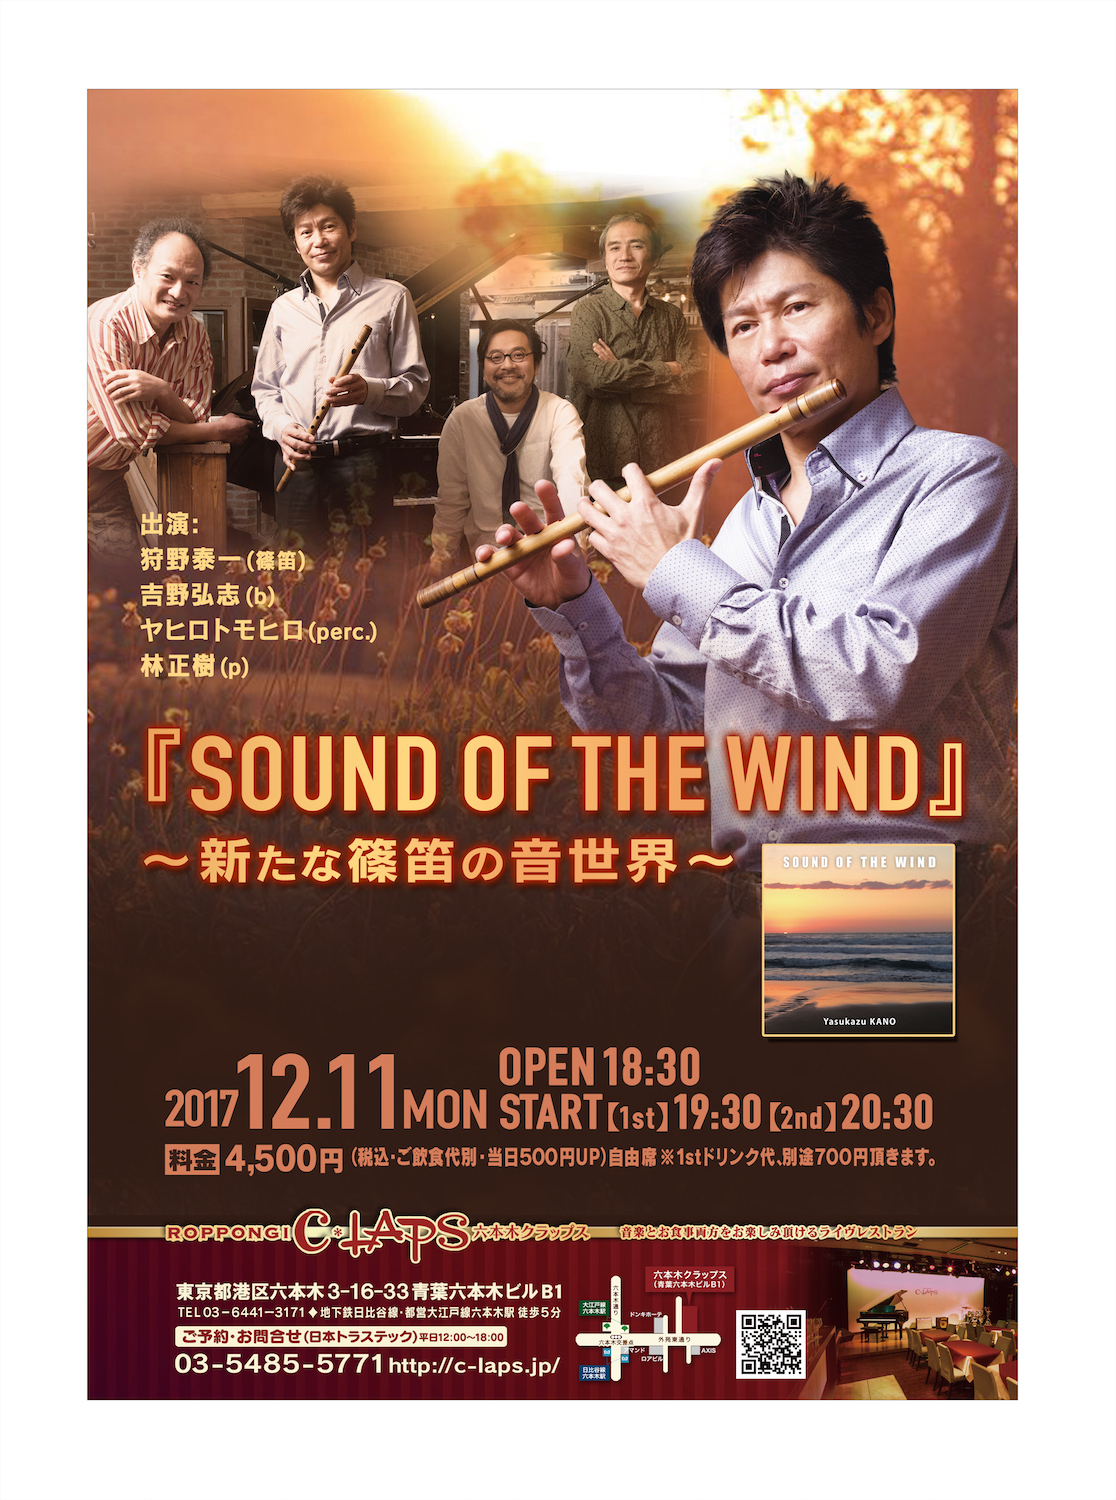 『SOUND OF THE WIND』フルメンバーライブ!